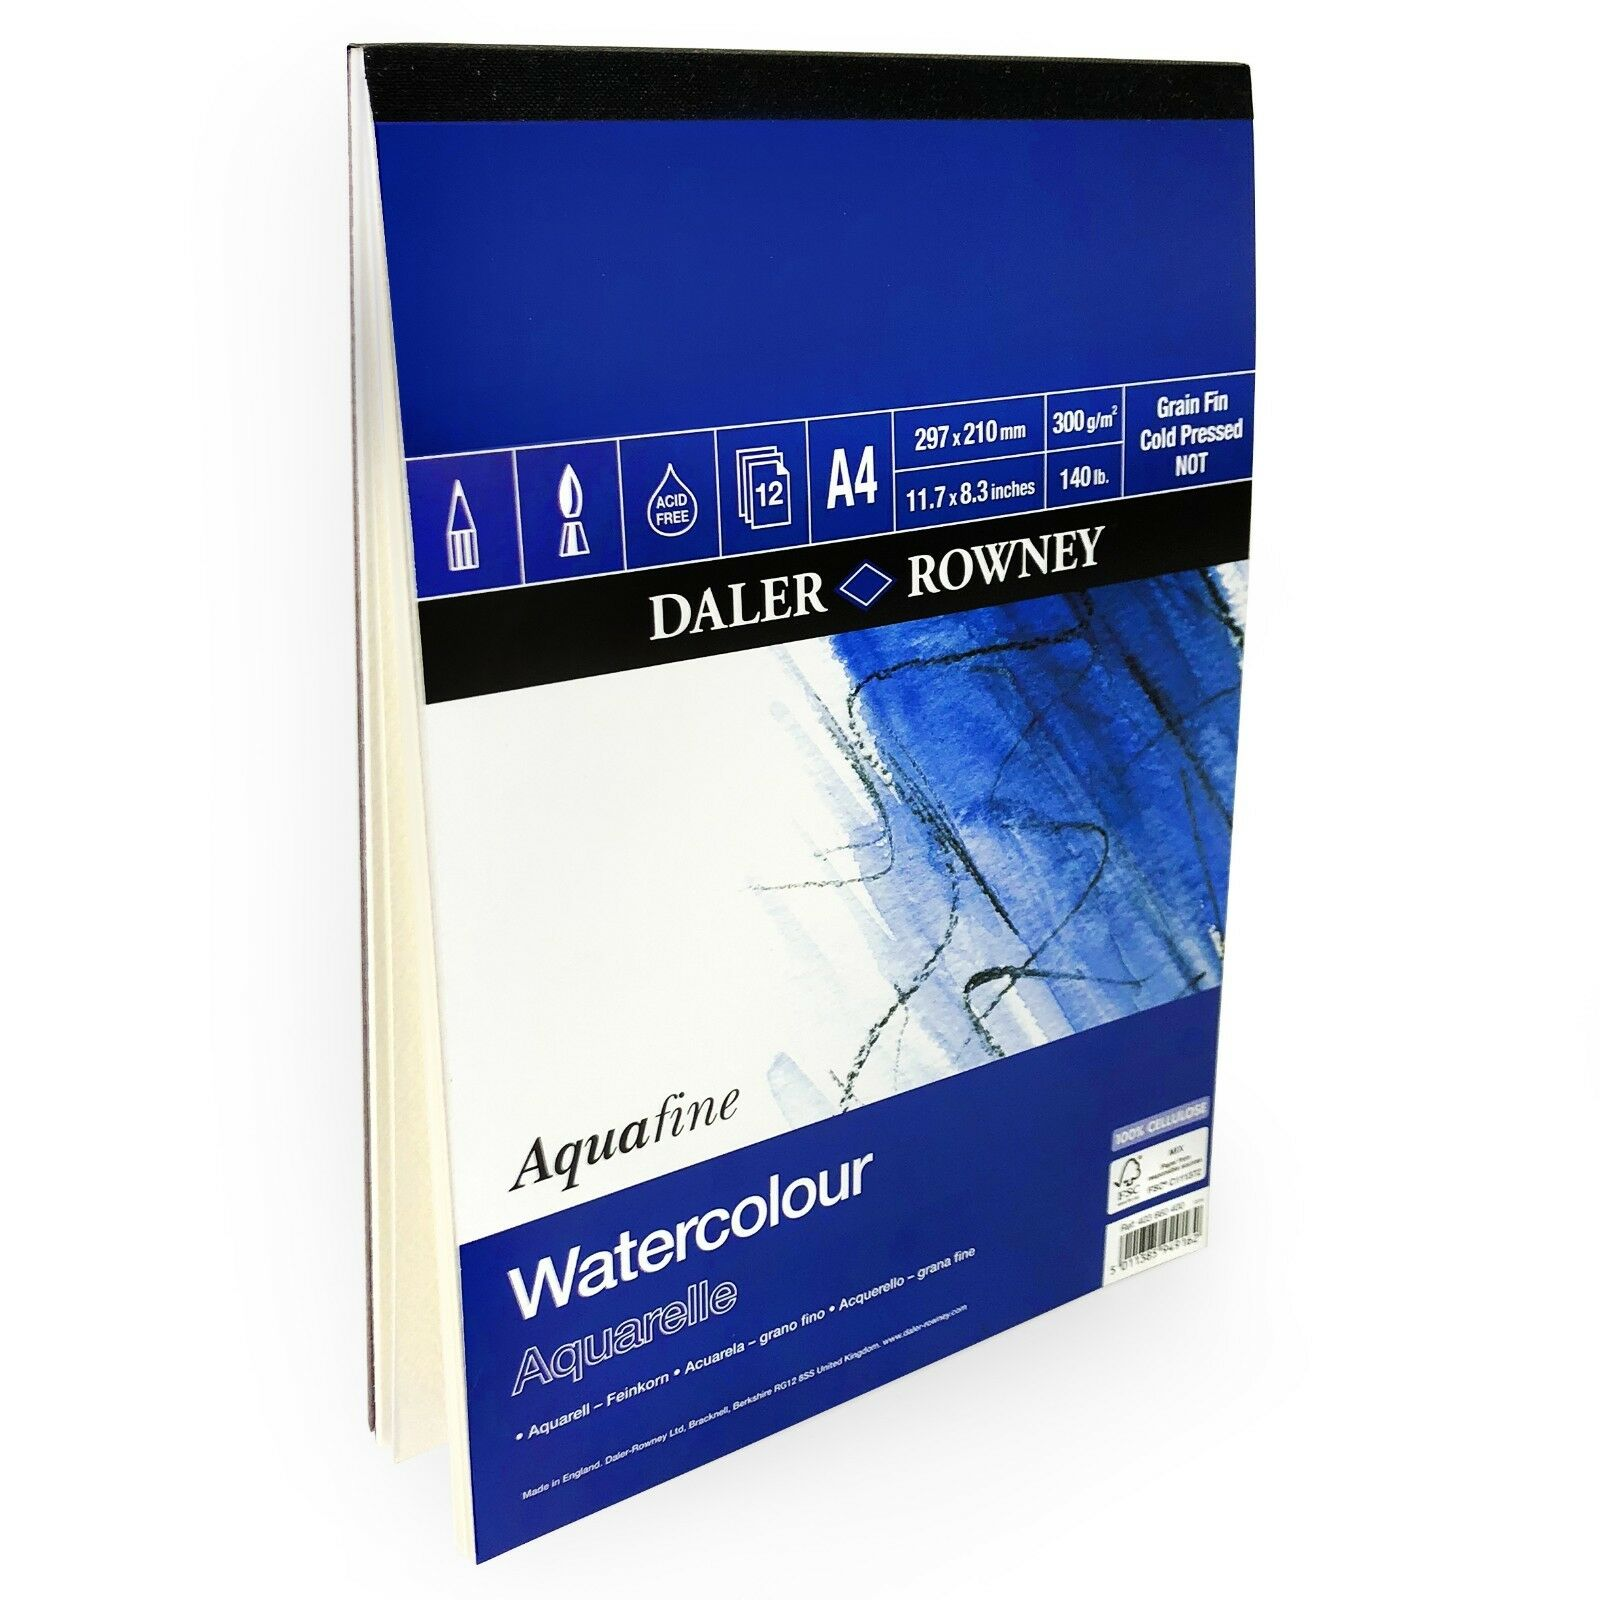 12 Sheets Daler Rowney Aquafine Watercolour A4 Sketchbook 300gsm